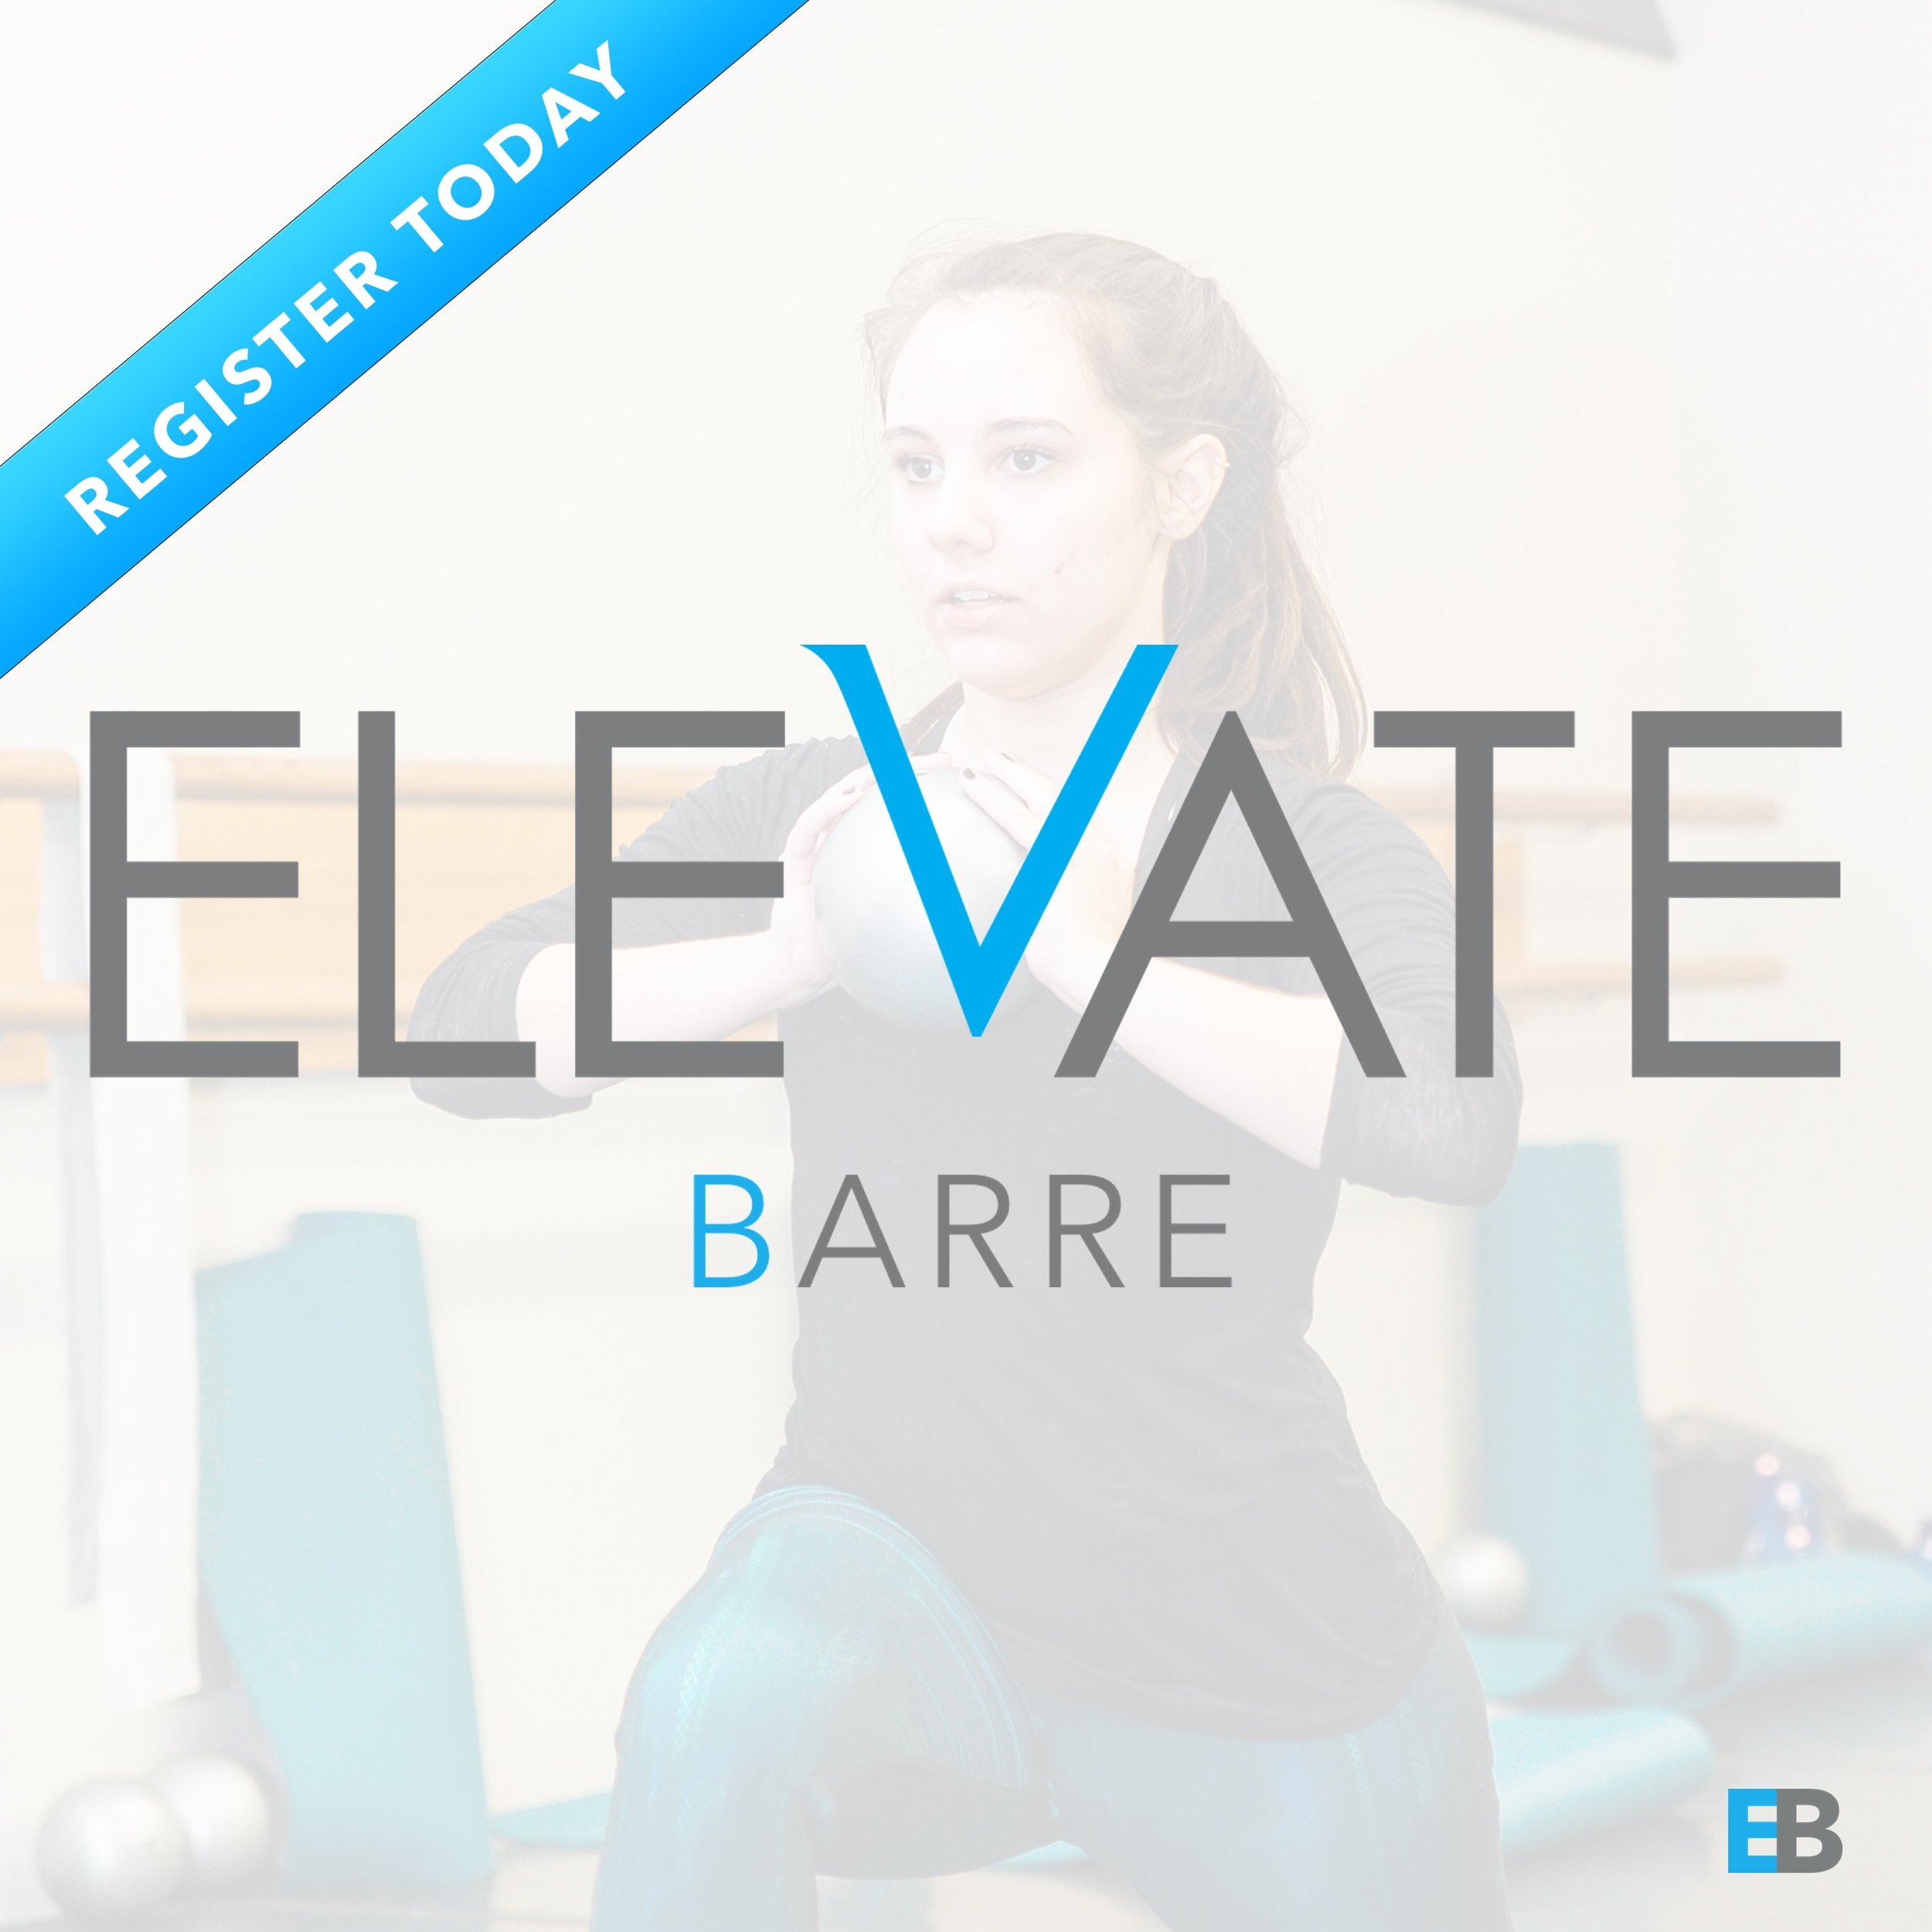 Get ready to take your workout to the next level at Elevate Barre. Register at  www.elevatebarre.com